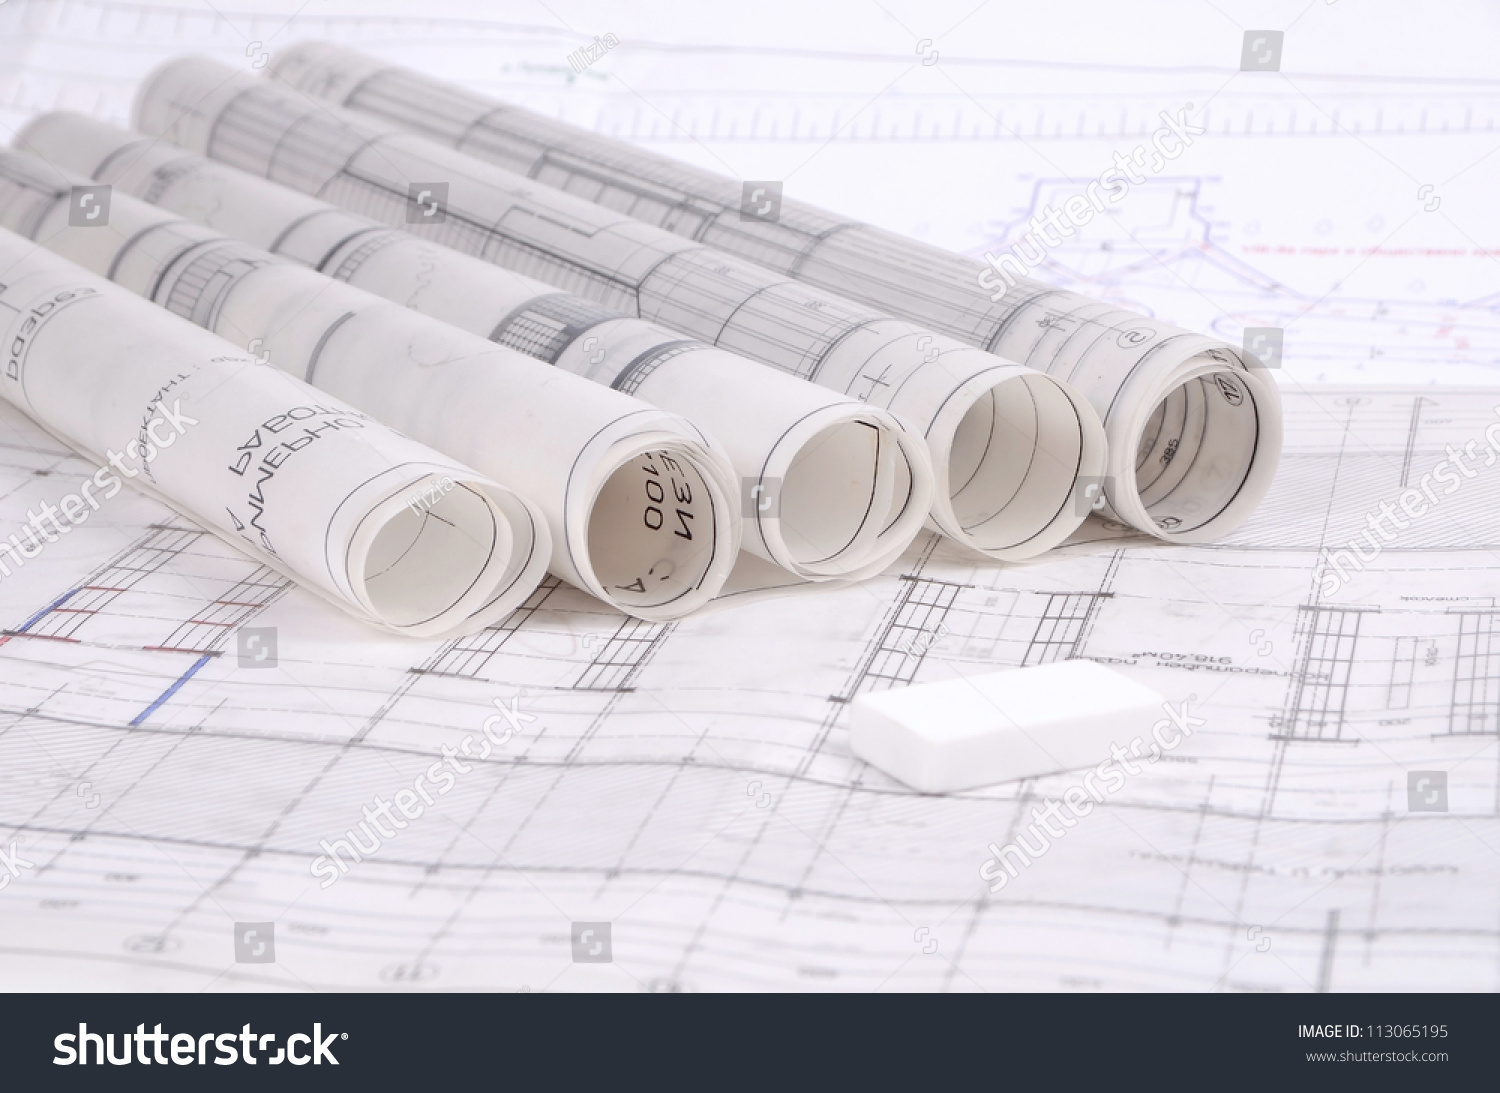 Architectural Plans Old Paper Tracing Stock Photo